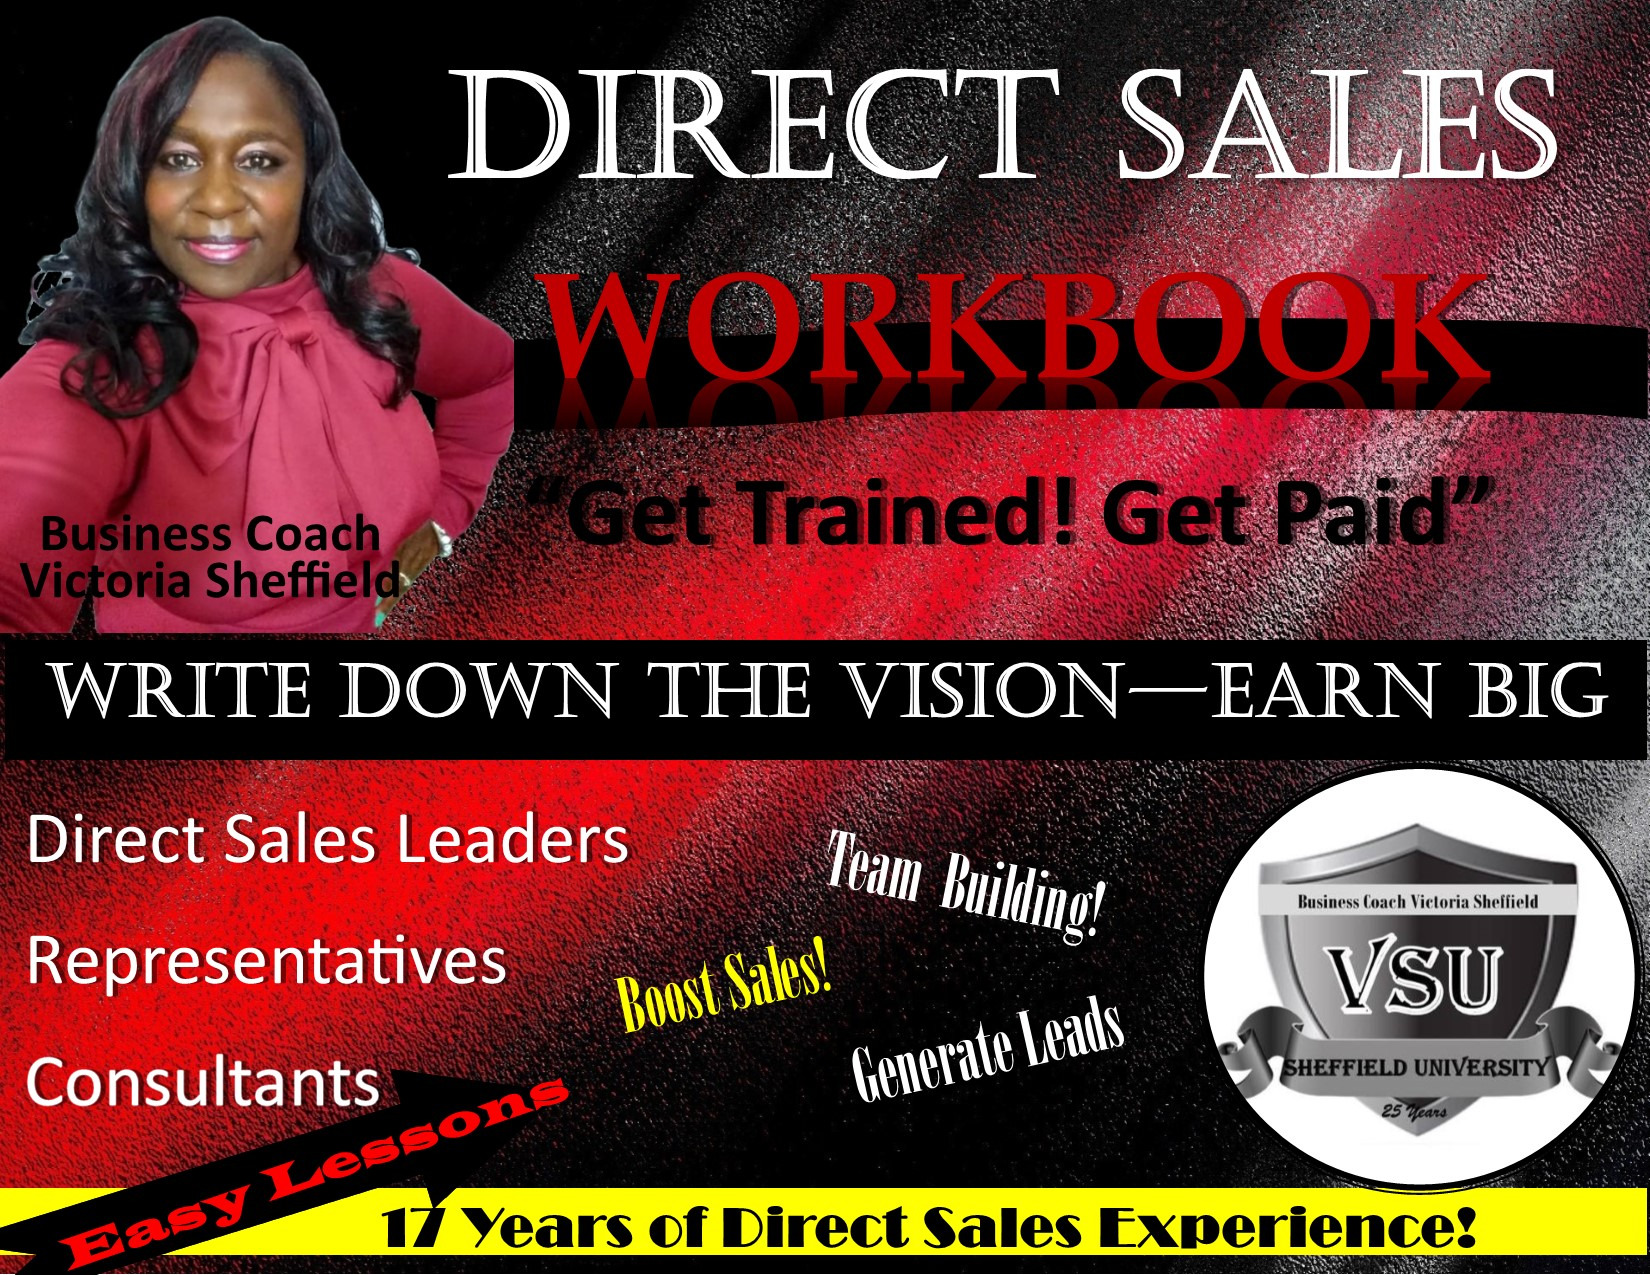 Direct Sales Workbook